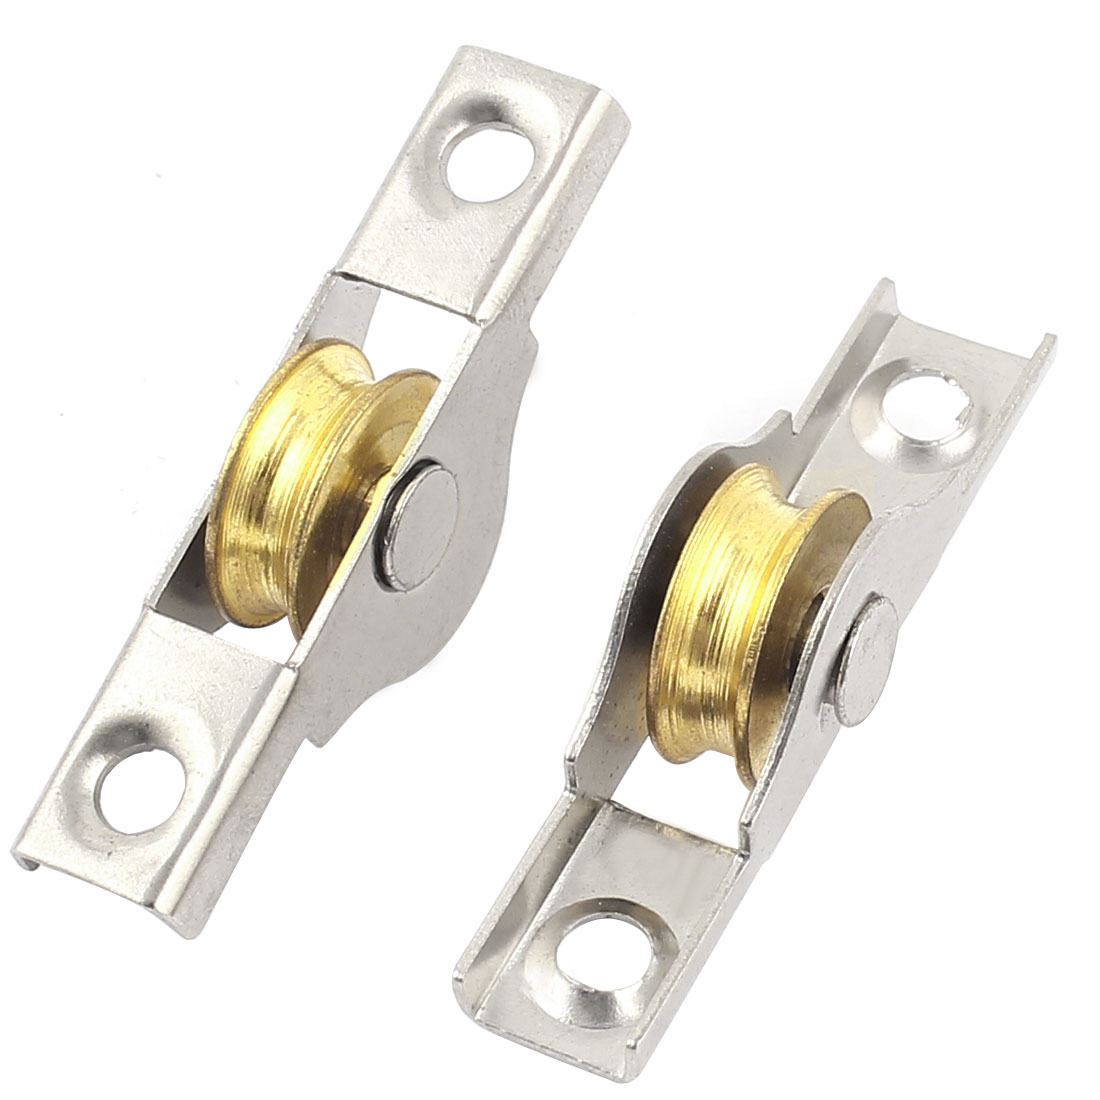 15mm x 6mm Sliding Door Single Rollers Window Sash Pulley Wheel 2 Pcs